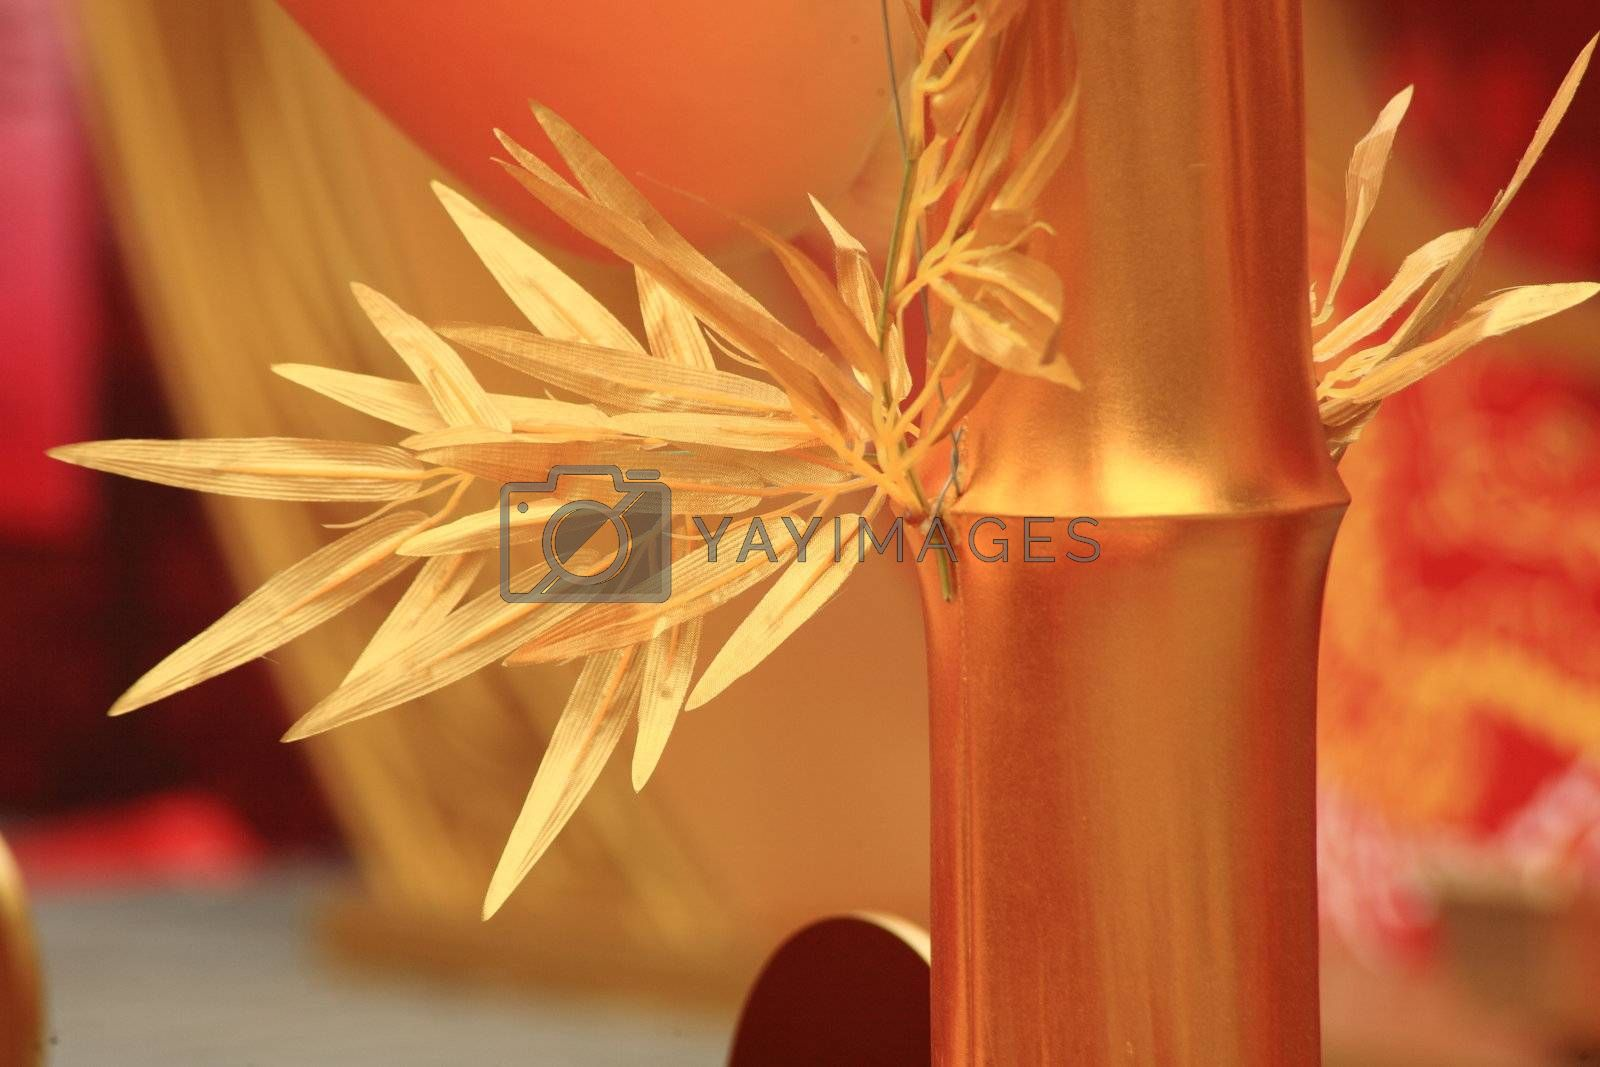 chinese new year scene, man-made golden bamboo by leungchopan